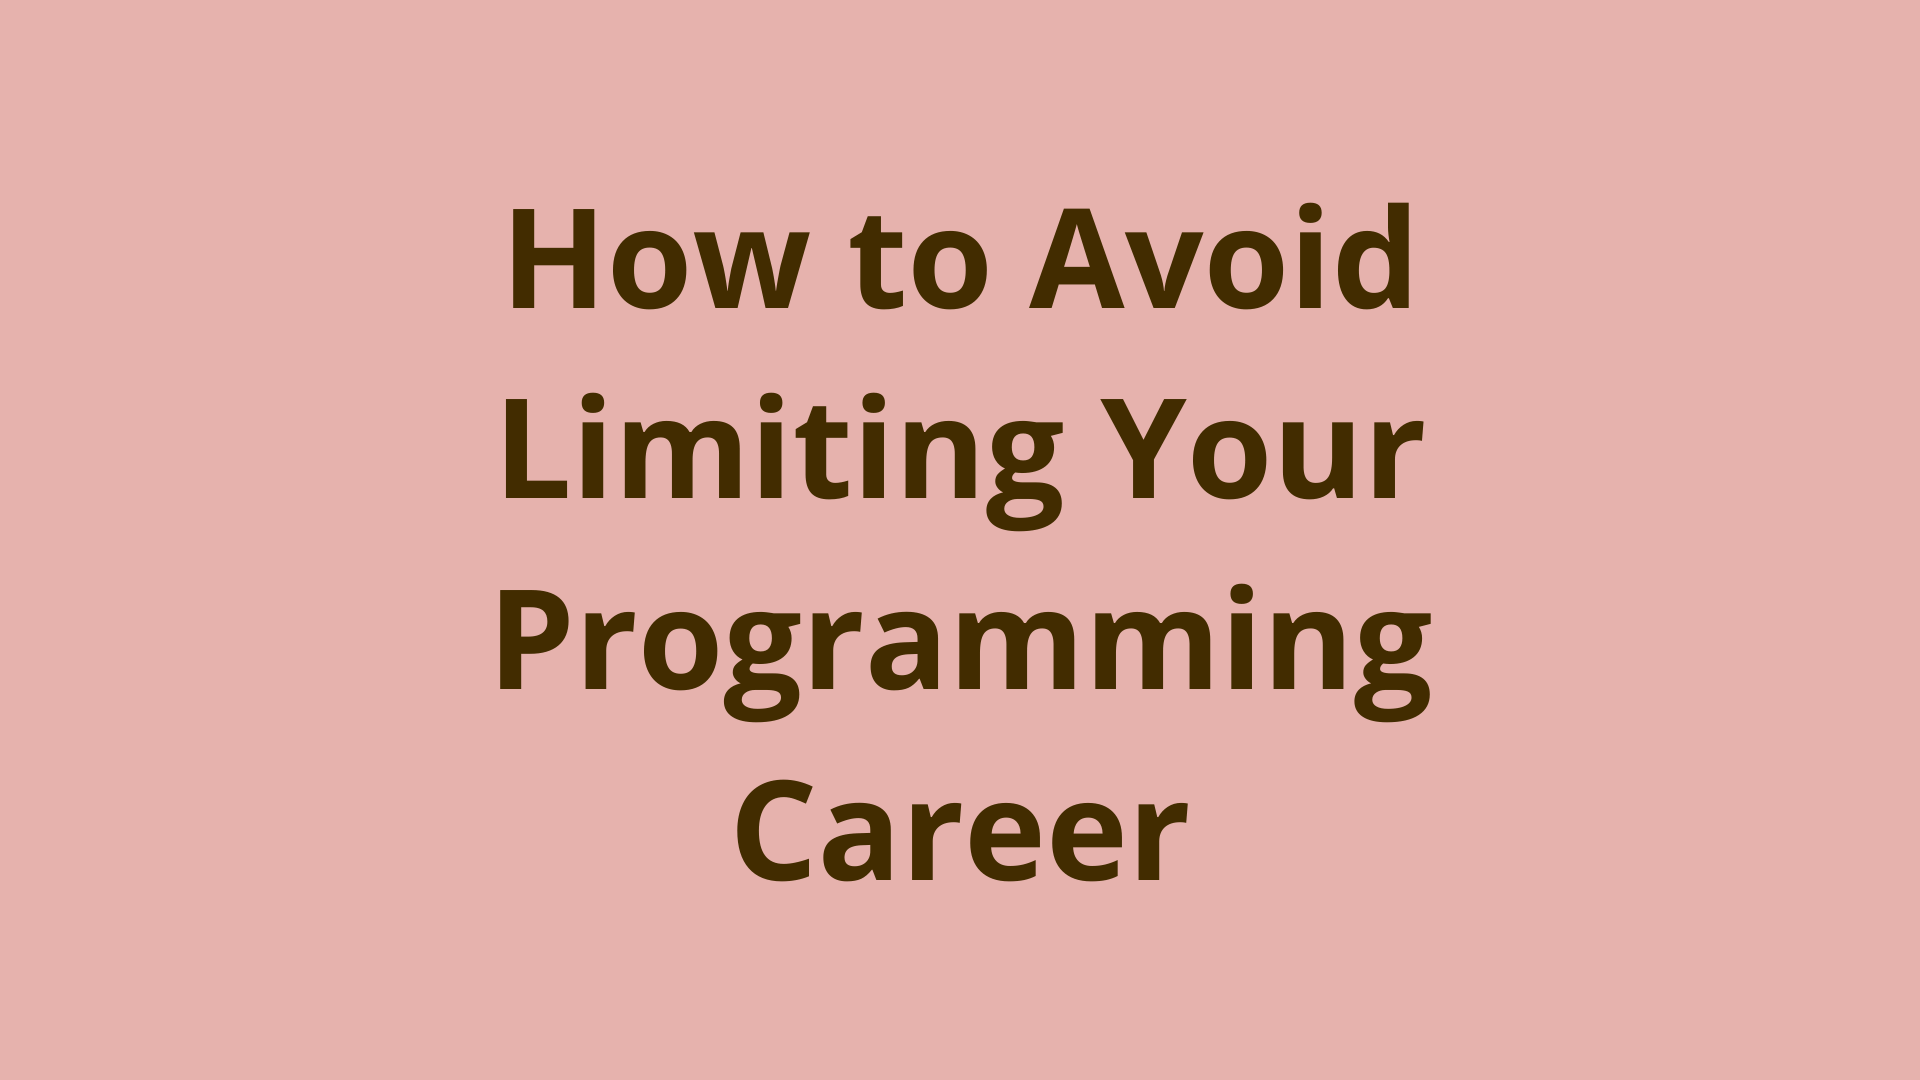 Image of How to avoid limiting your programming career